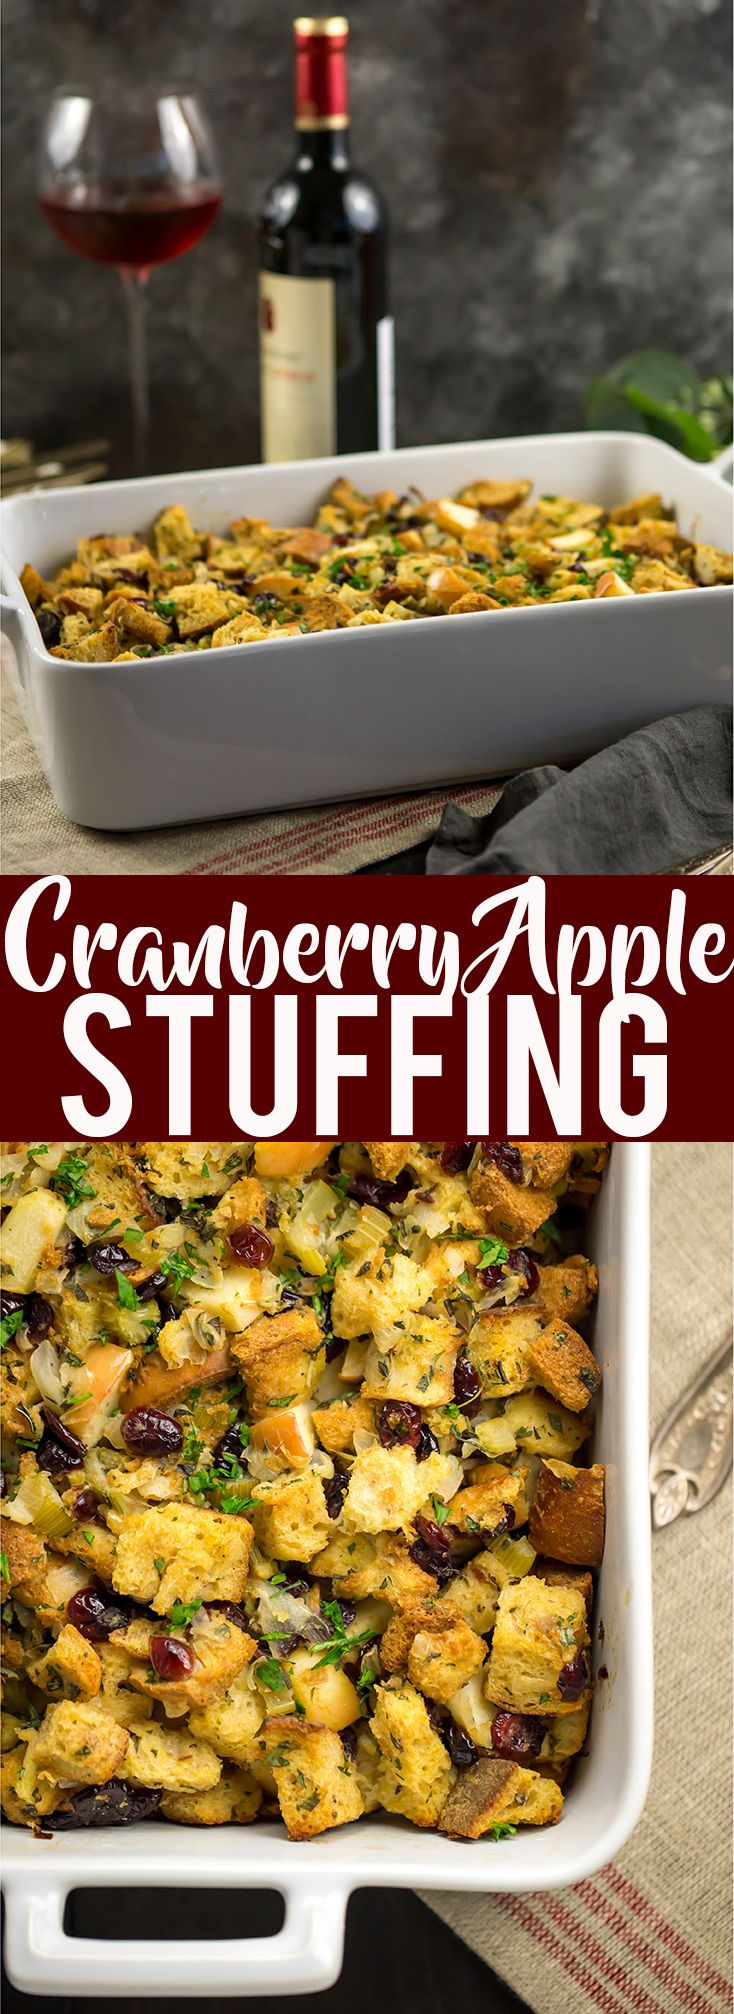 Cranberry Apple Stuffing | Posted By: DebbieNet.com